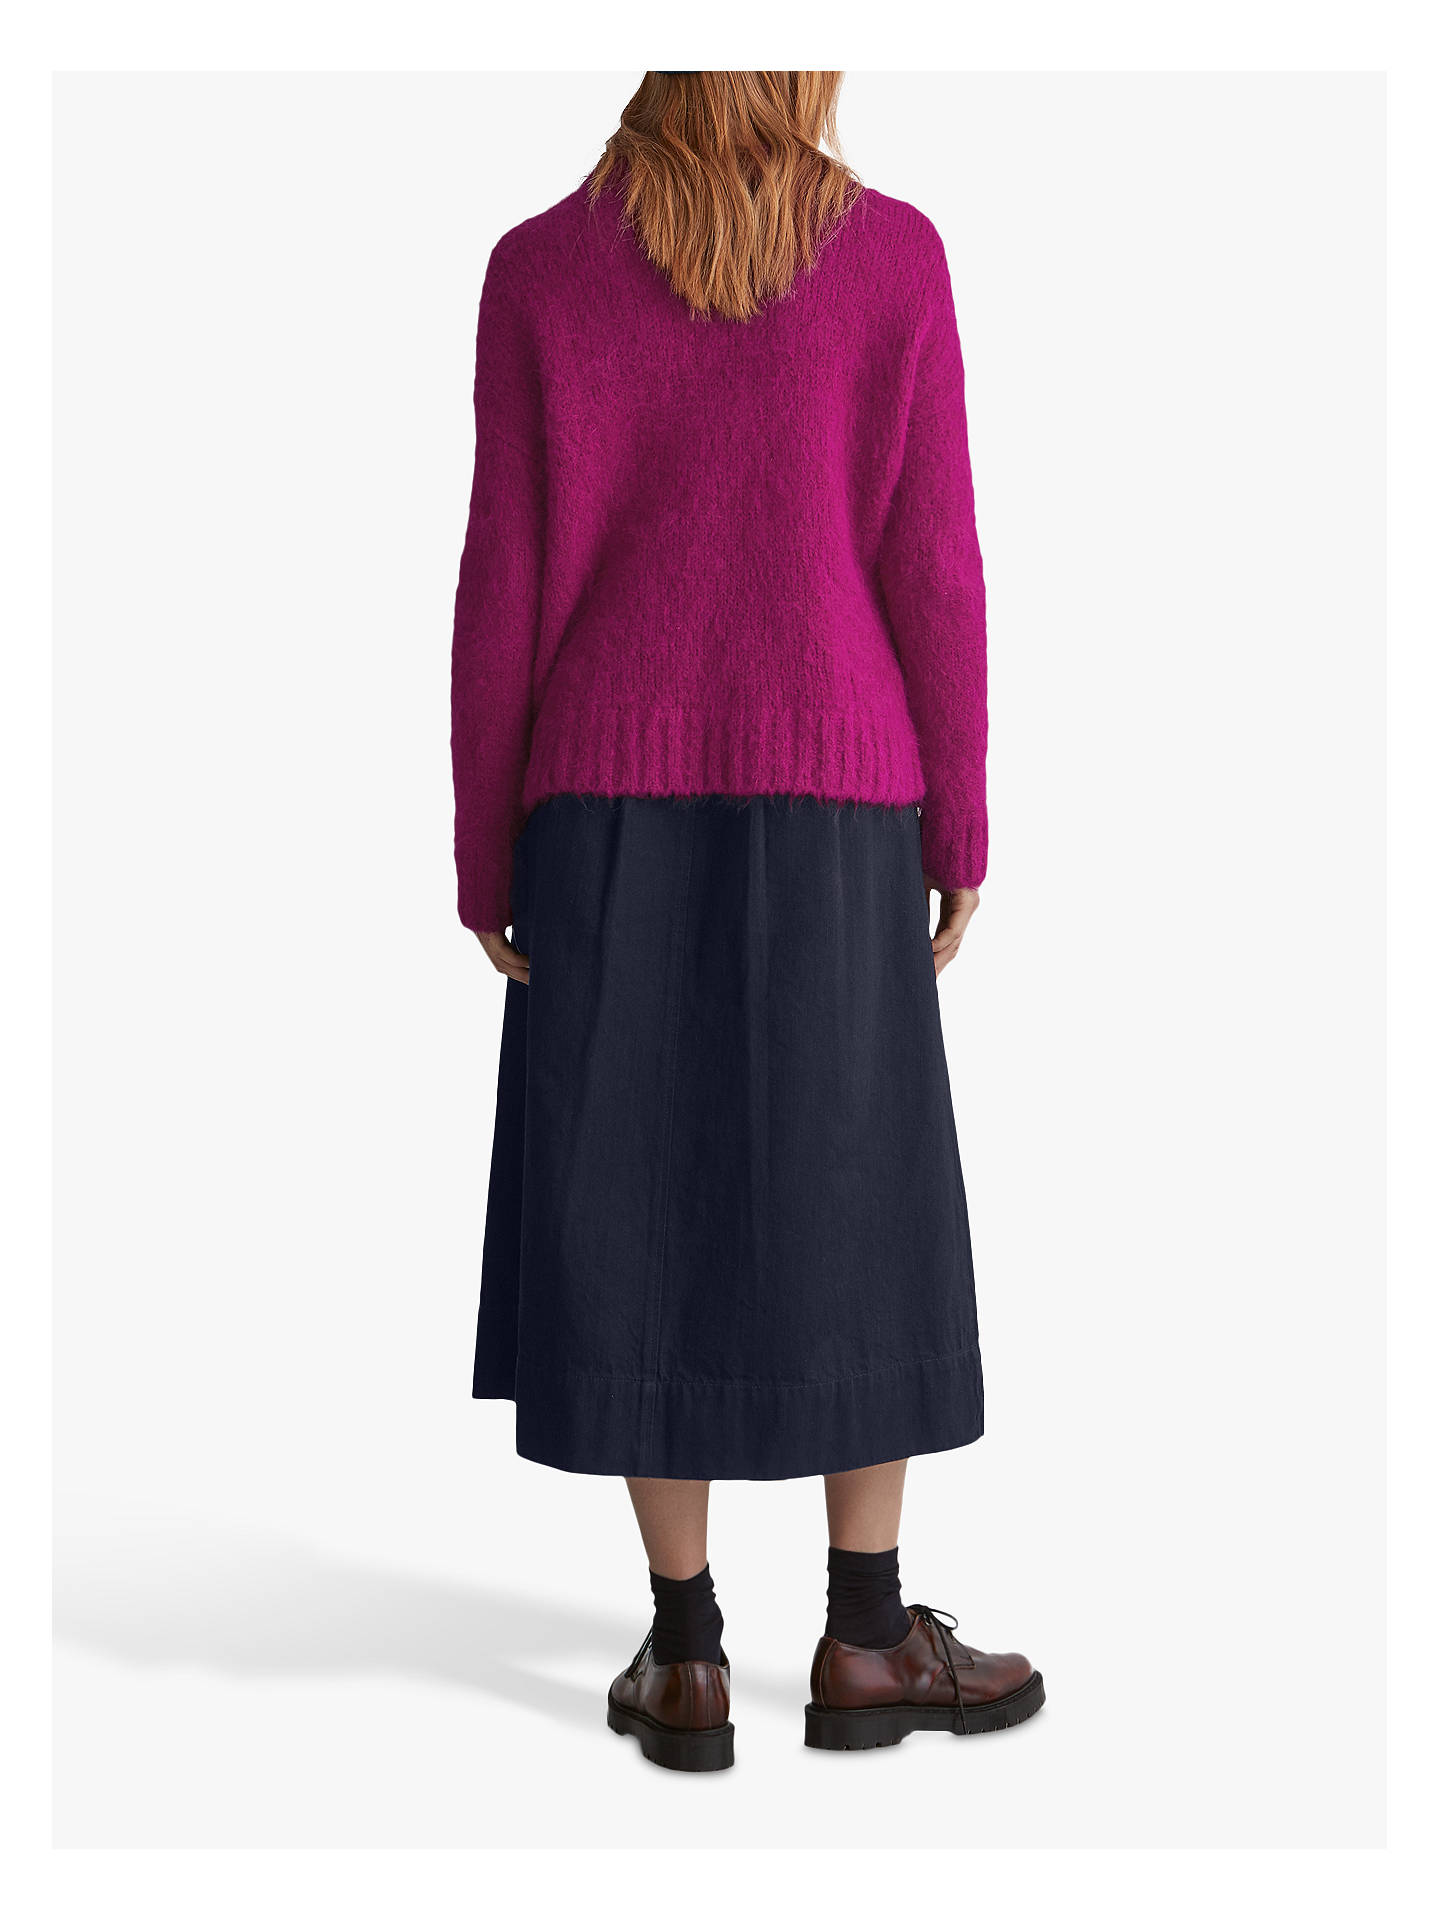 BuyToast Suri Alpaca Sweater, Magenta, L/XL Online at johnlewis.com